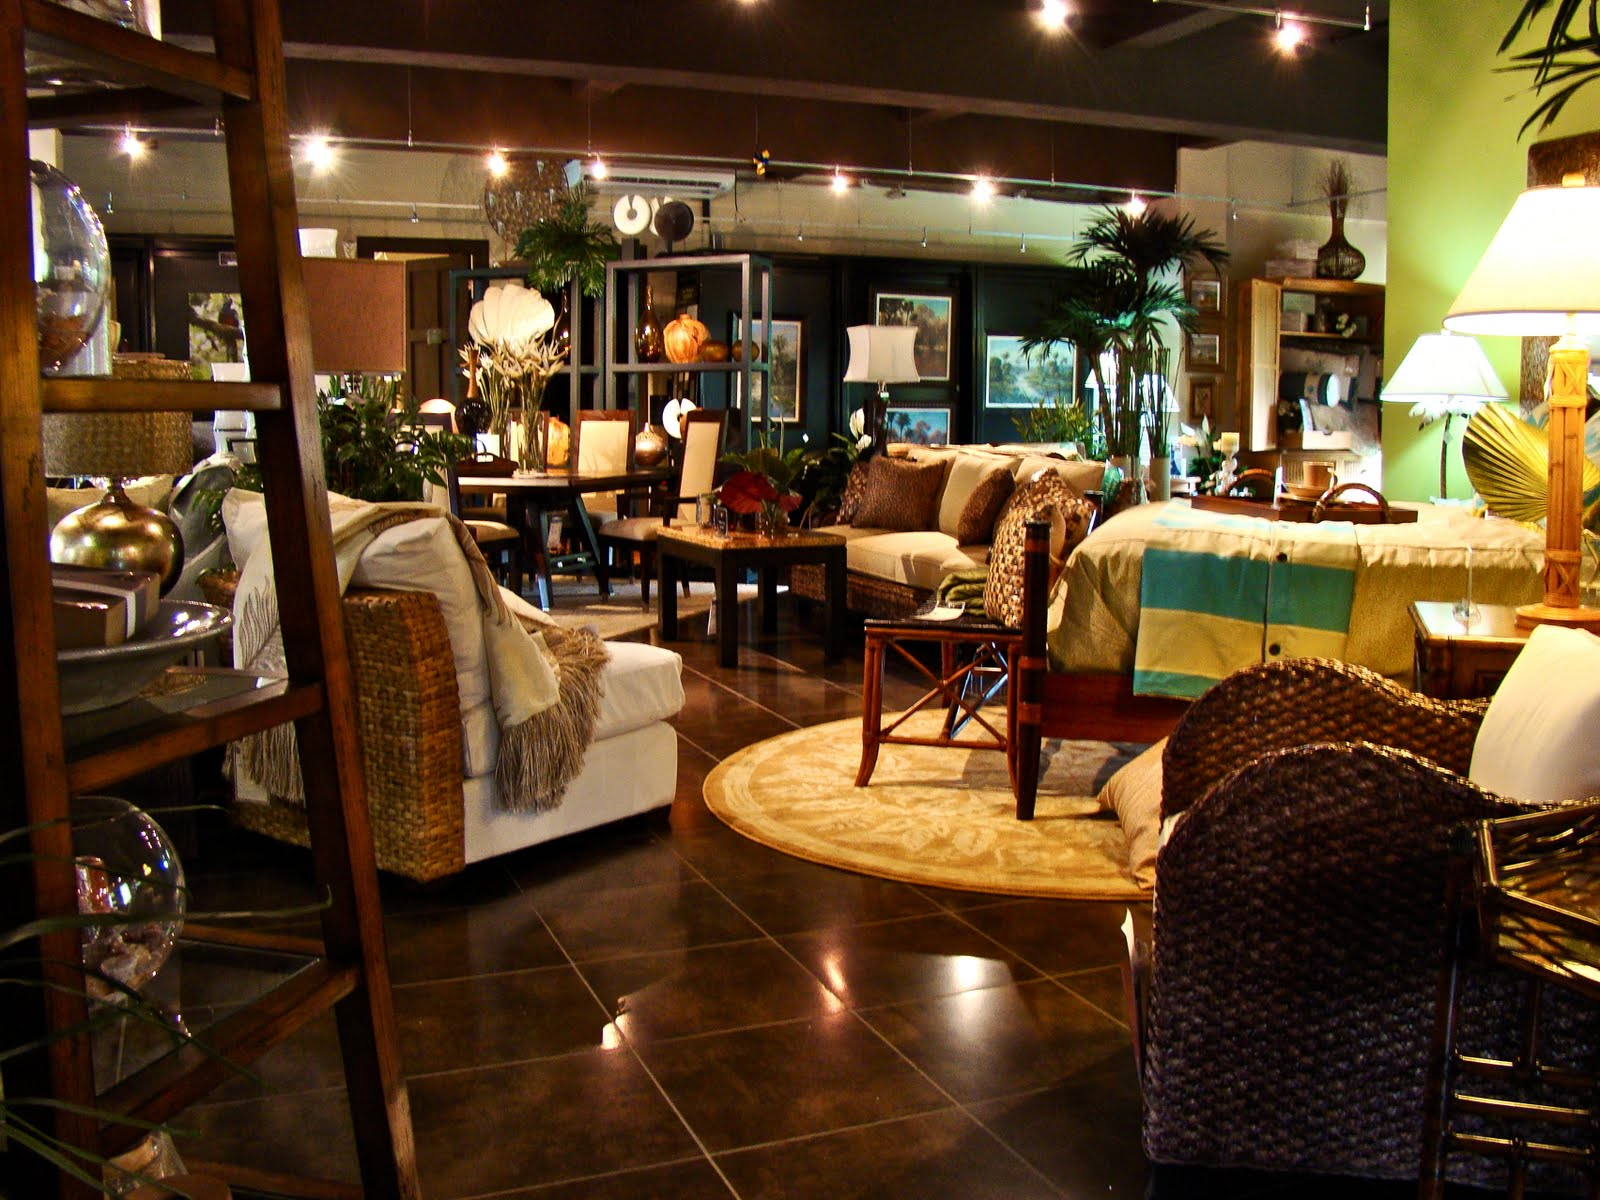 Tamarindo costa rica daily photo furniture store - Home furnishing stores ...